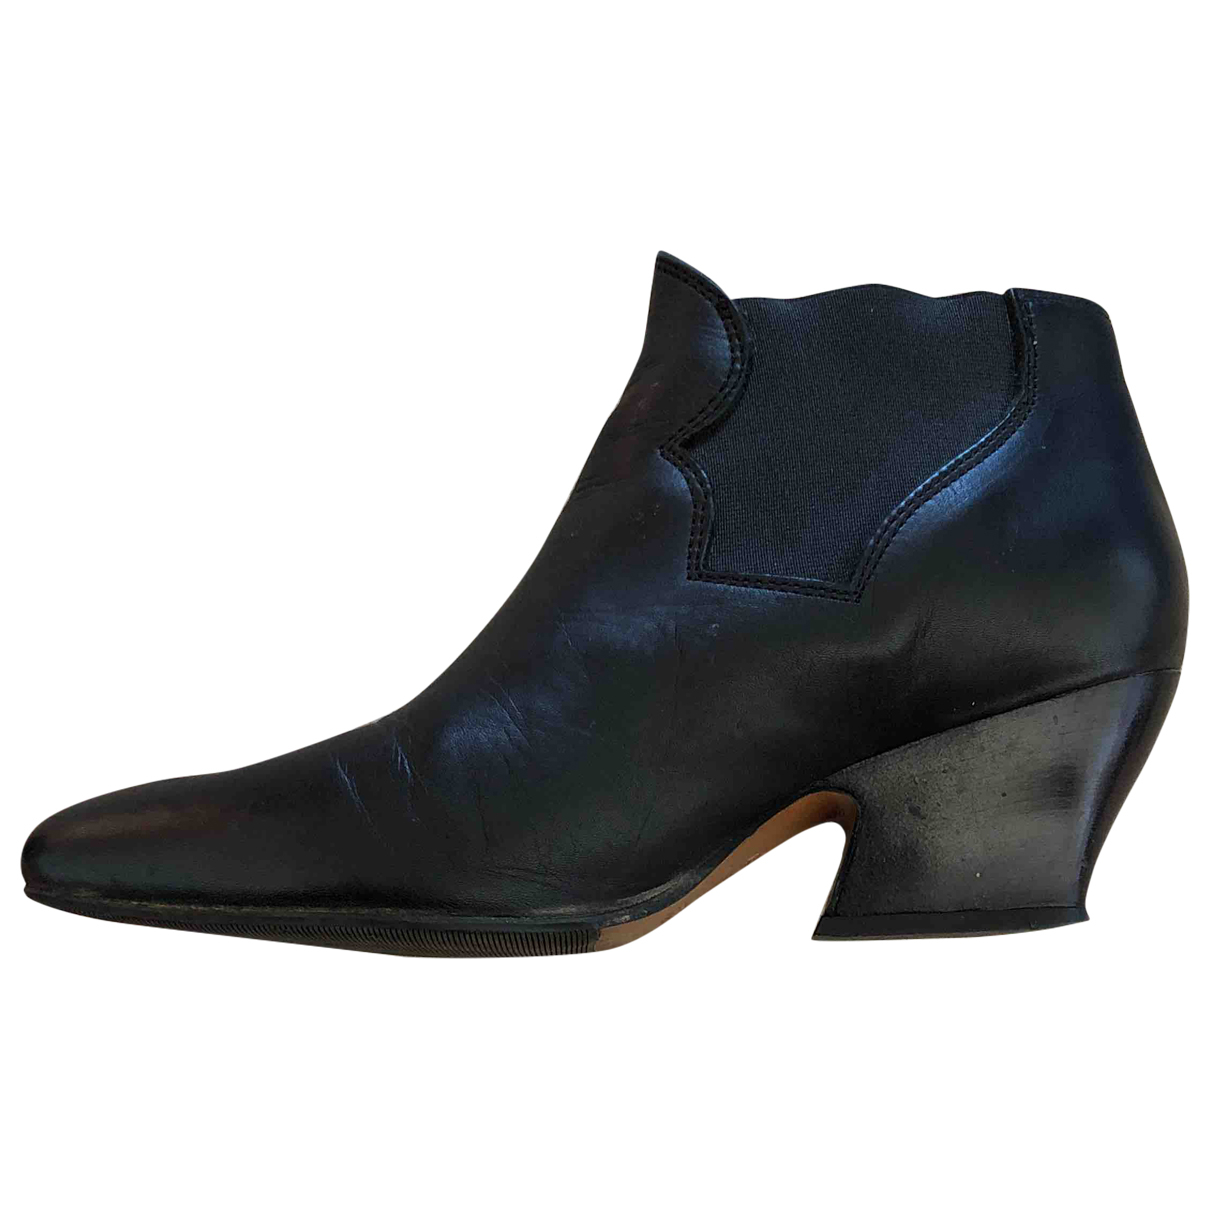 Acne Studios Star Black Leather Ankle boots for Women 36 EU